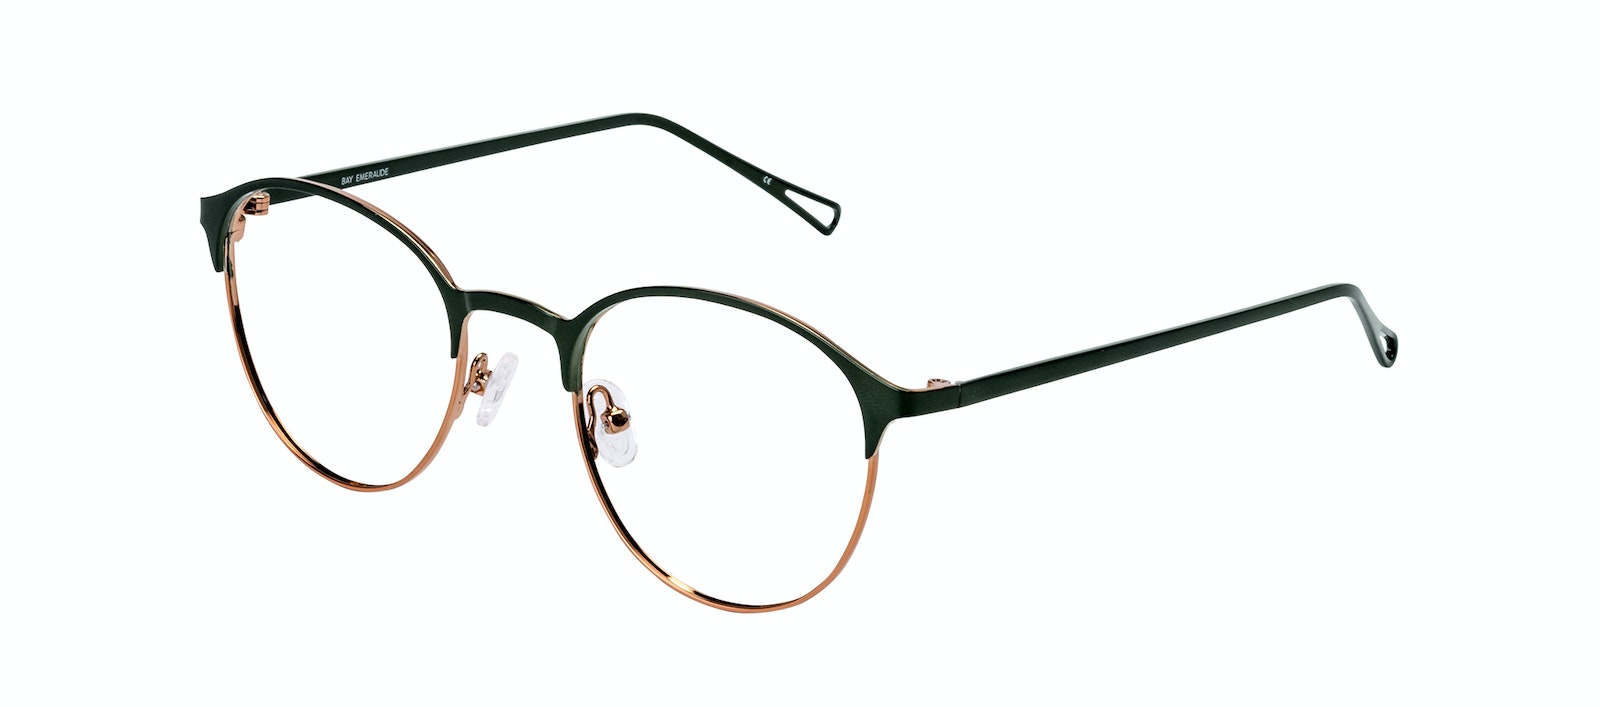 Affordable Fashion Glasses Round Eyeglasses Women Bay Emeraude Tilt